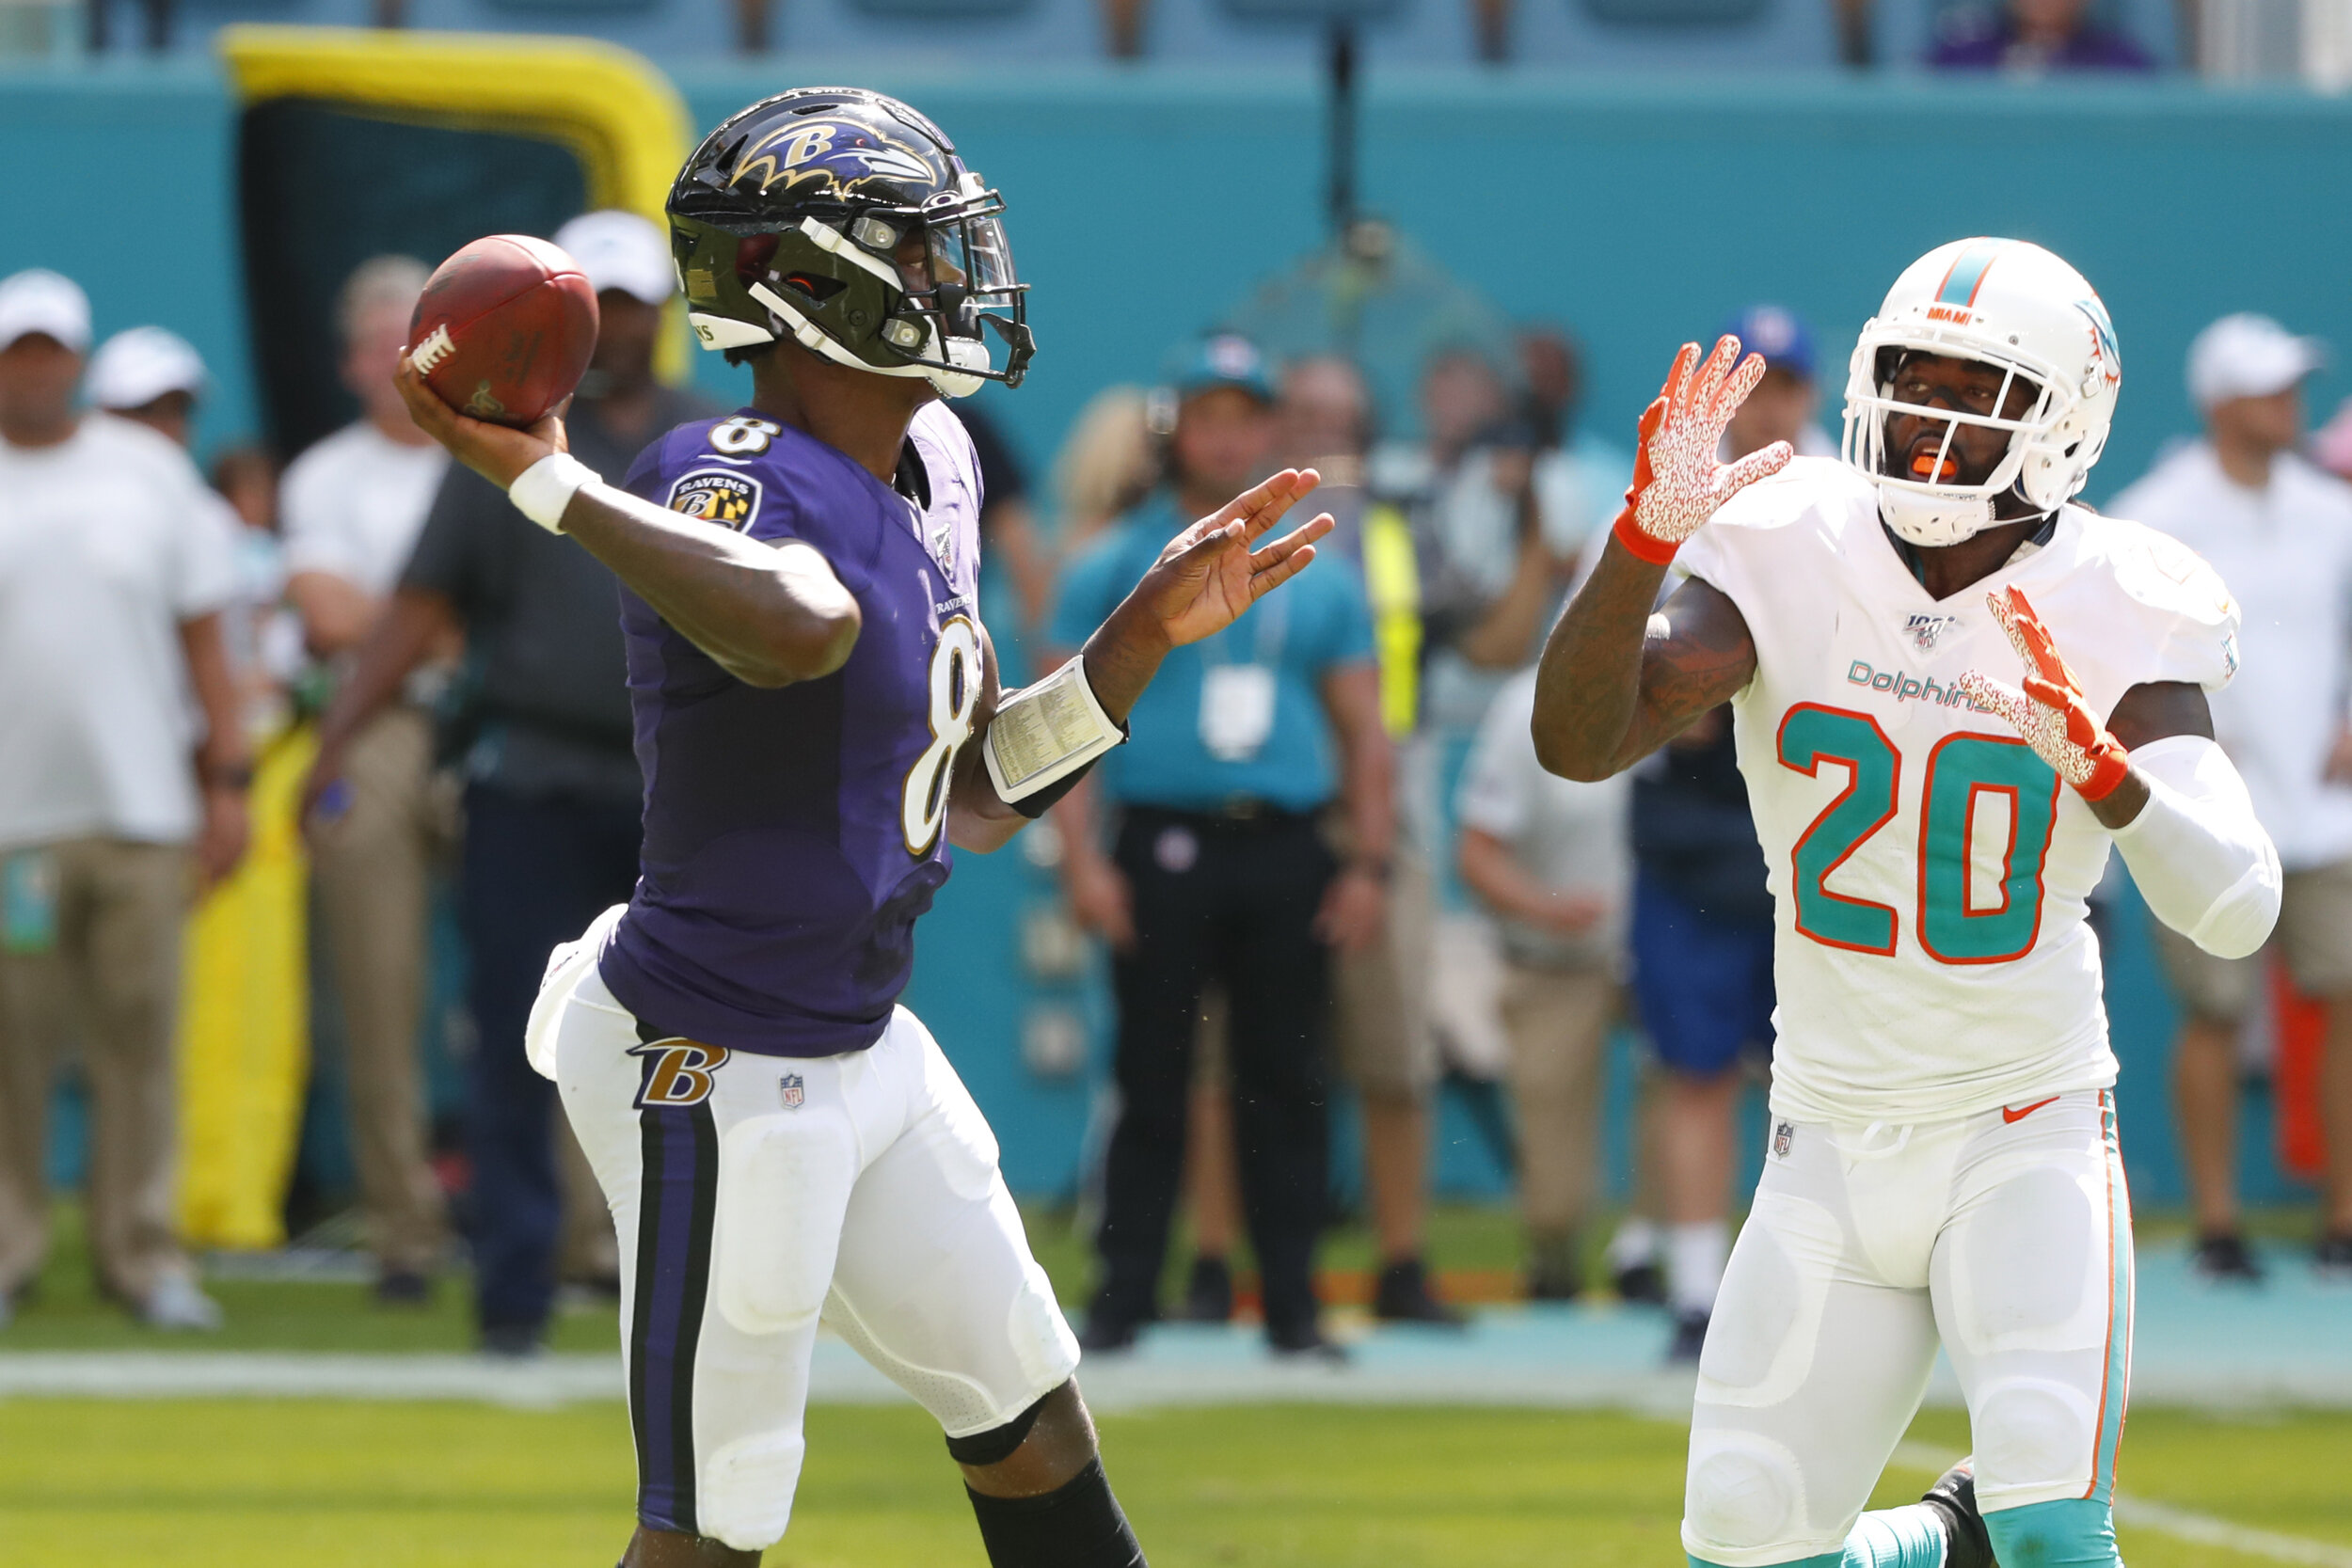 Second-year QB Lamar Jackson torched the Miami Dolphins defense, totaling 324 yards and 5 touchdowns.  Photo from The Associated Press.